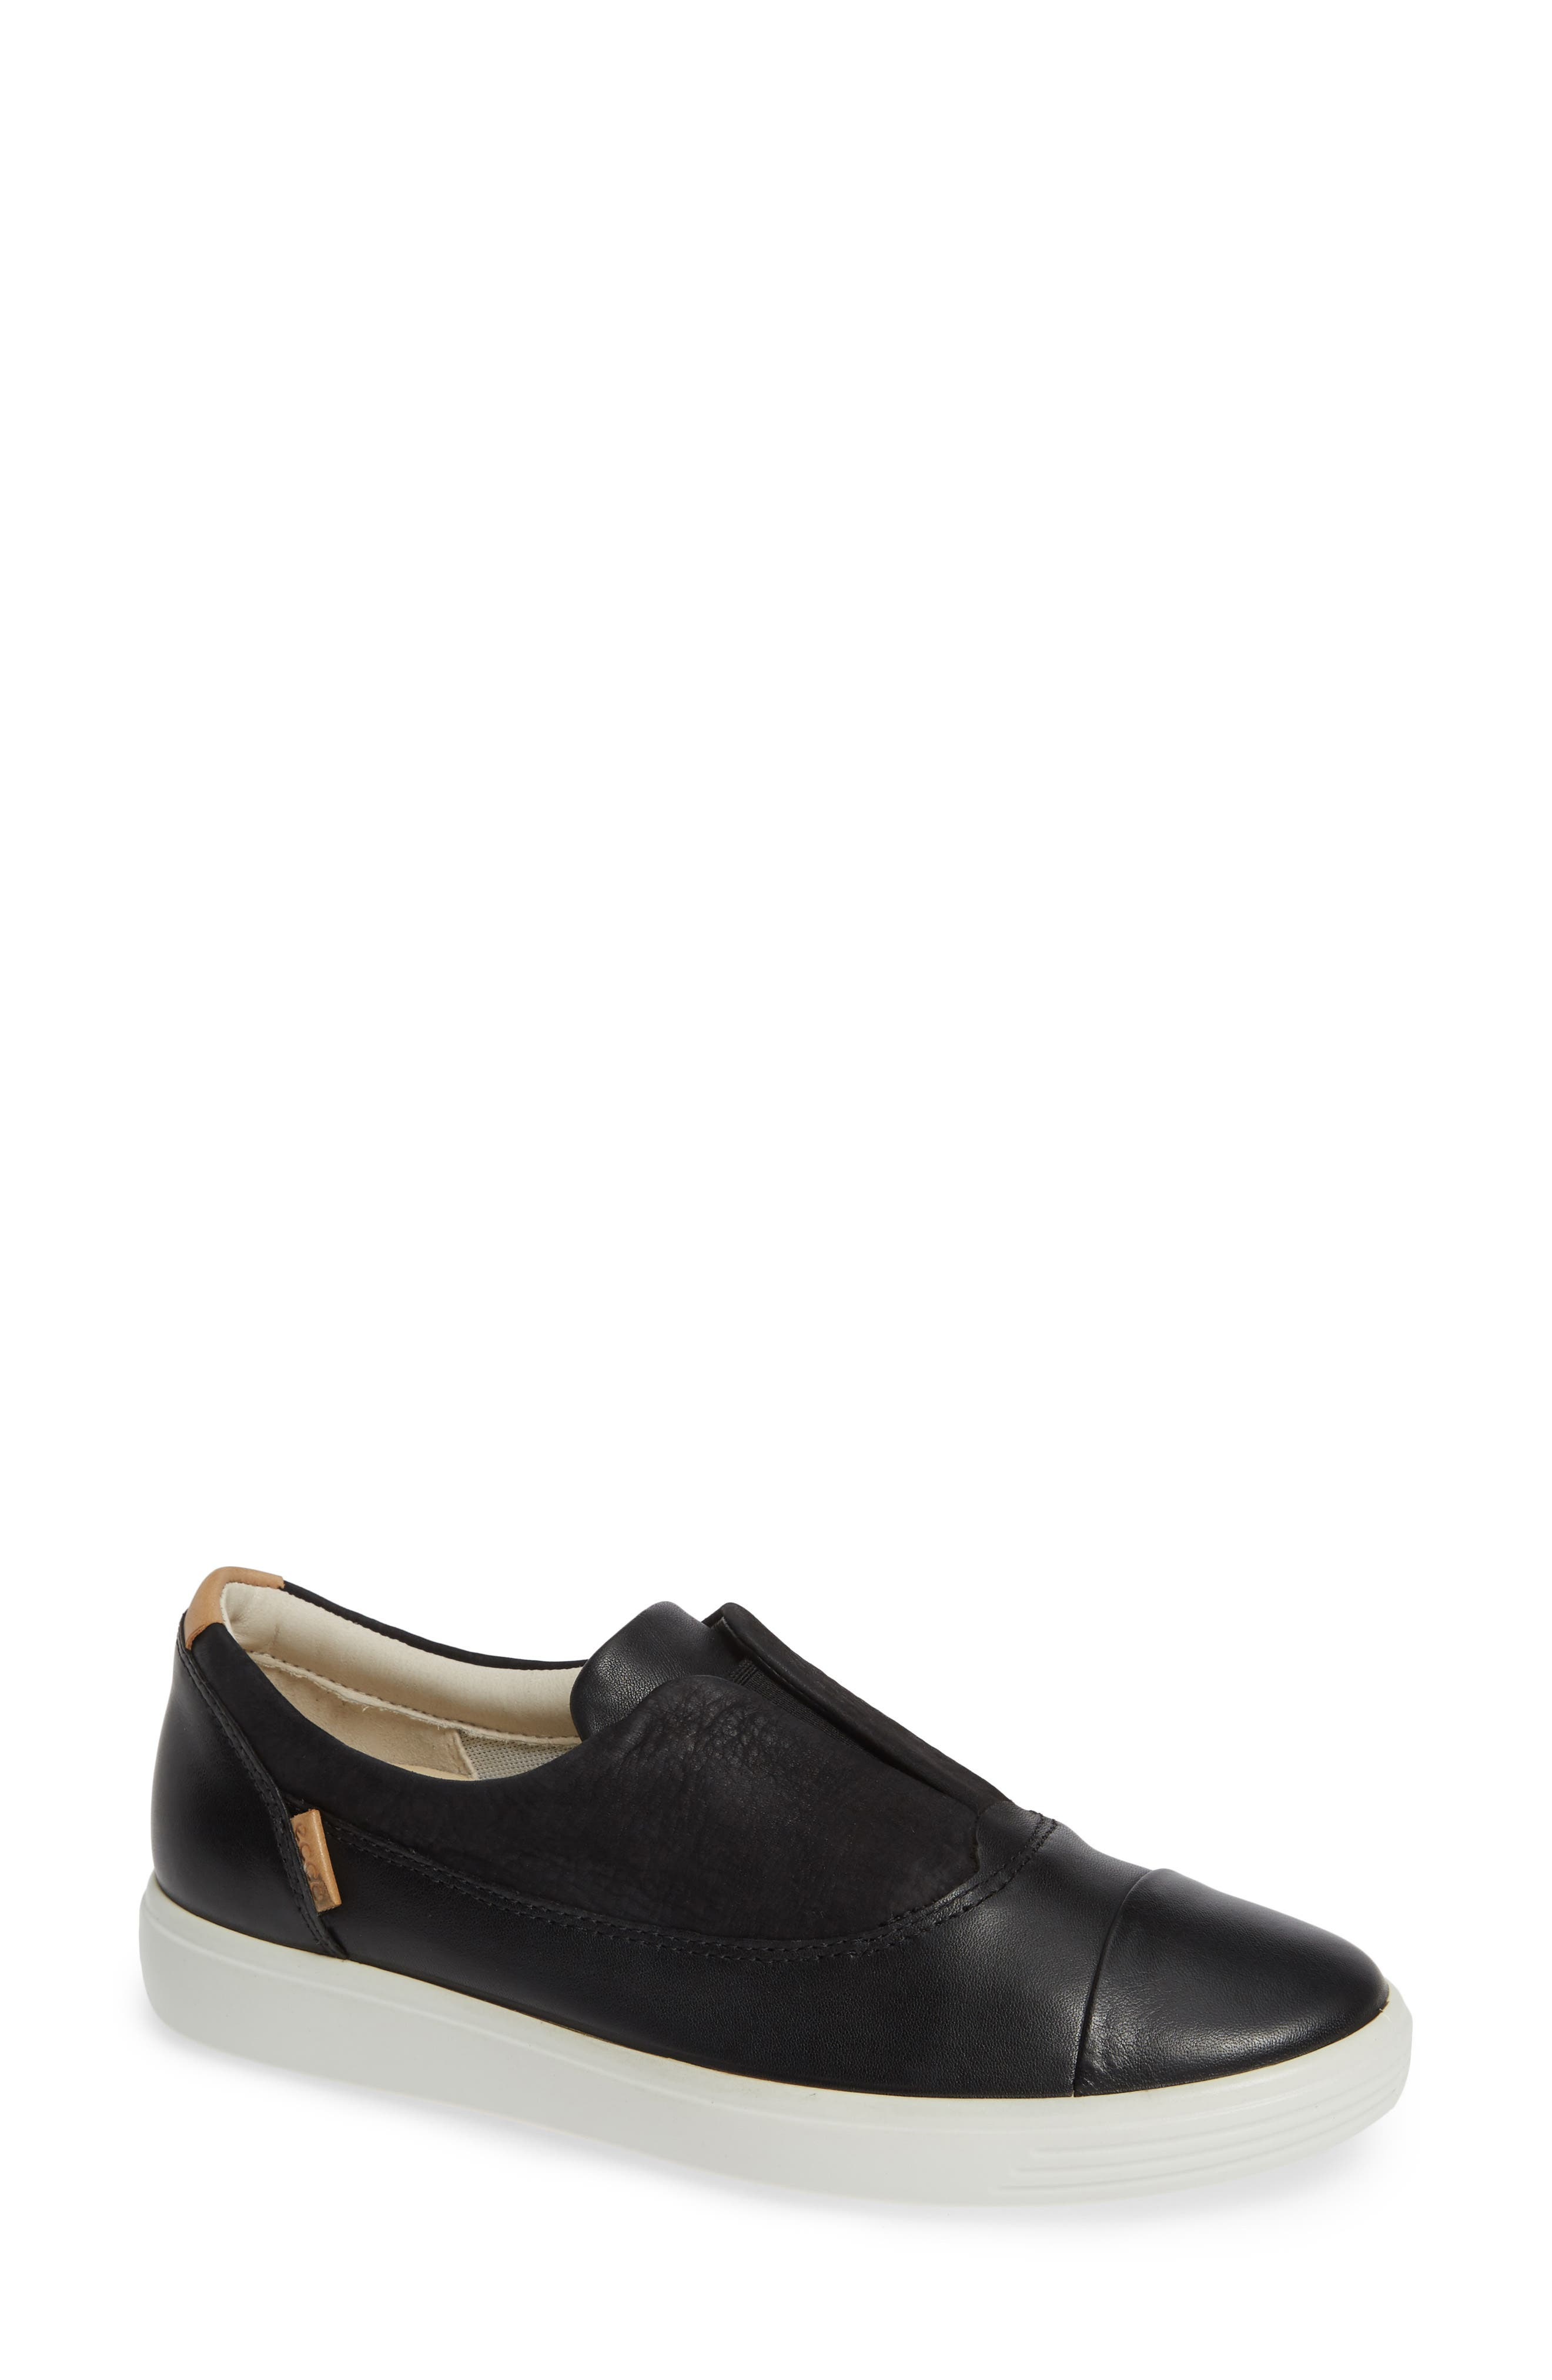 Soft 7 II Slip-On Sneaker,                         Main,                         color, BLACK LEATHER